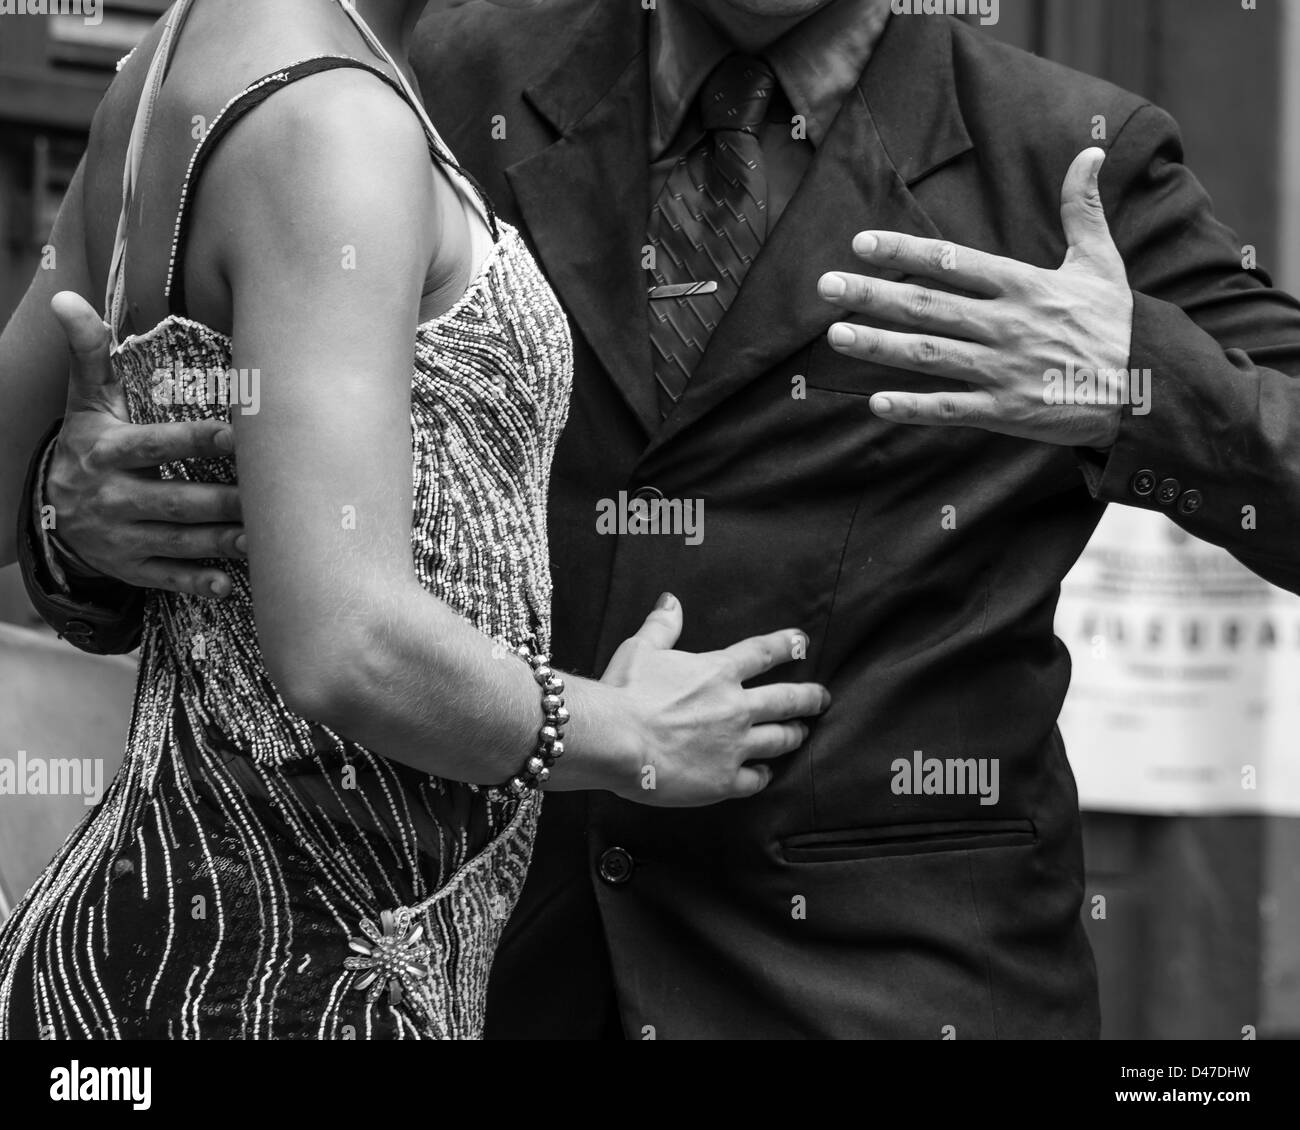 Argentina Tango Black And White Stock Photos Images Alamy Dance Step Diagram Multiple Dancers Argentinian In Image